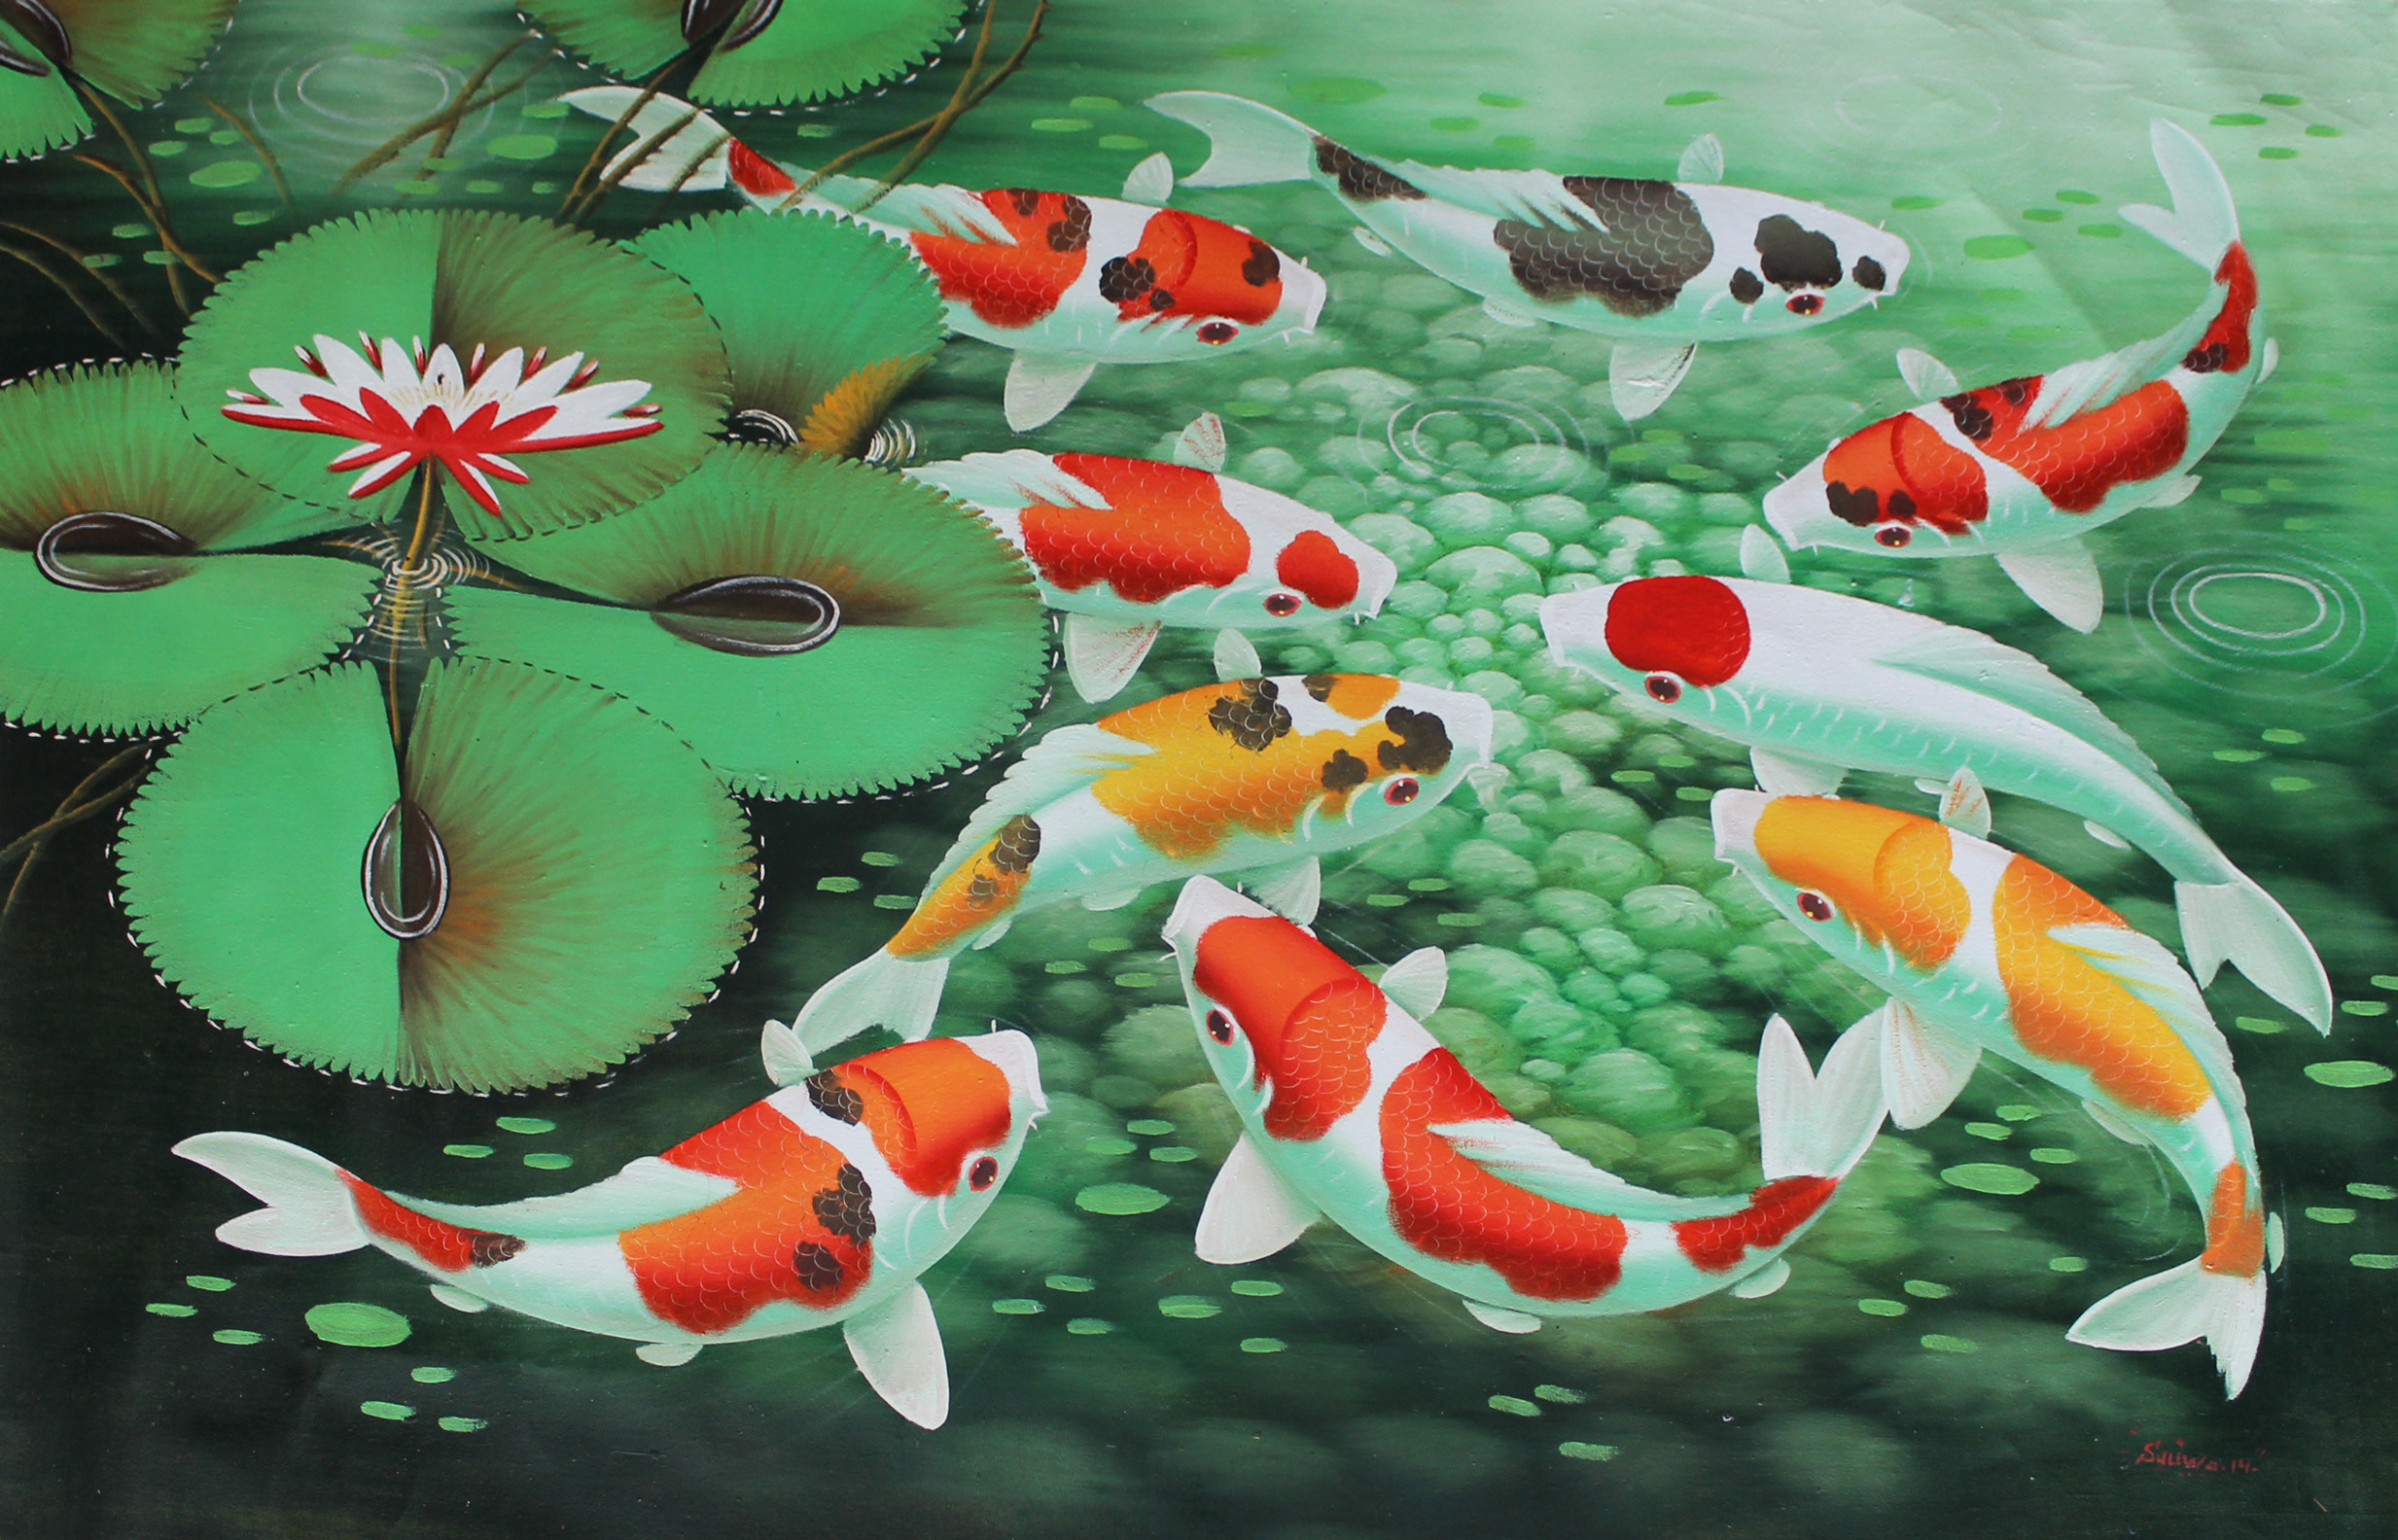 Butterfly Wallpaper For Desktop With Animation Hd Koi Fish Wallpaper 54 Images